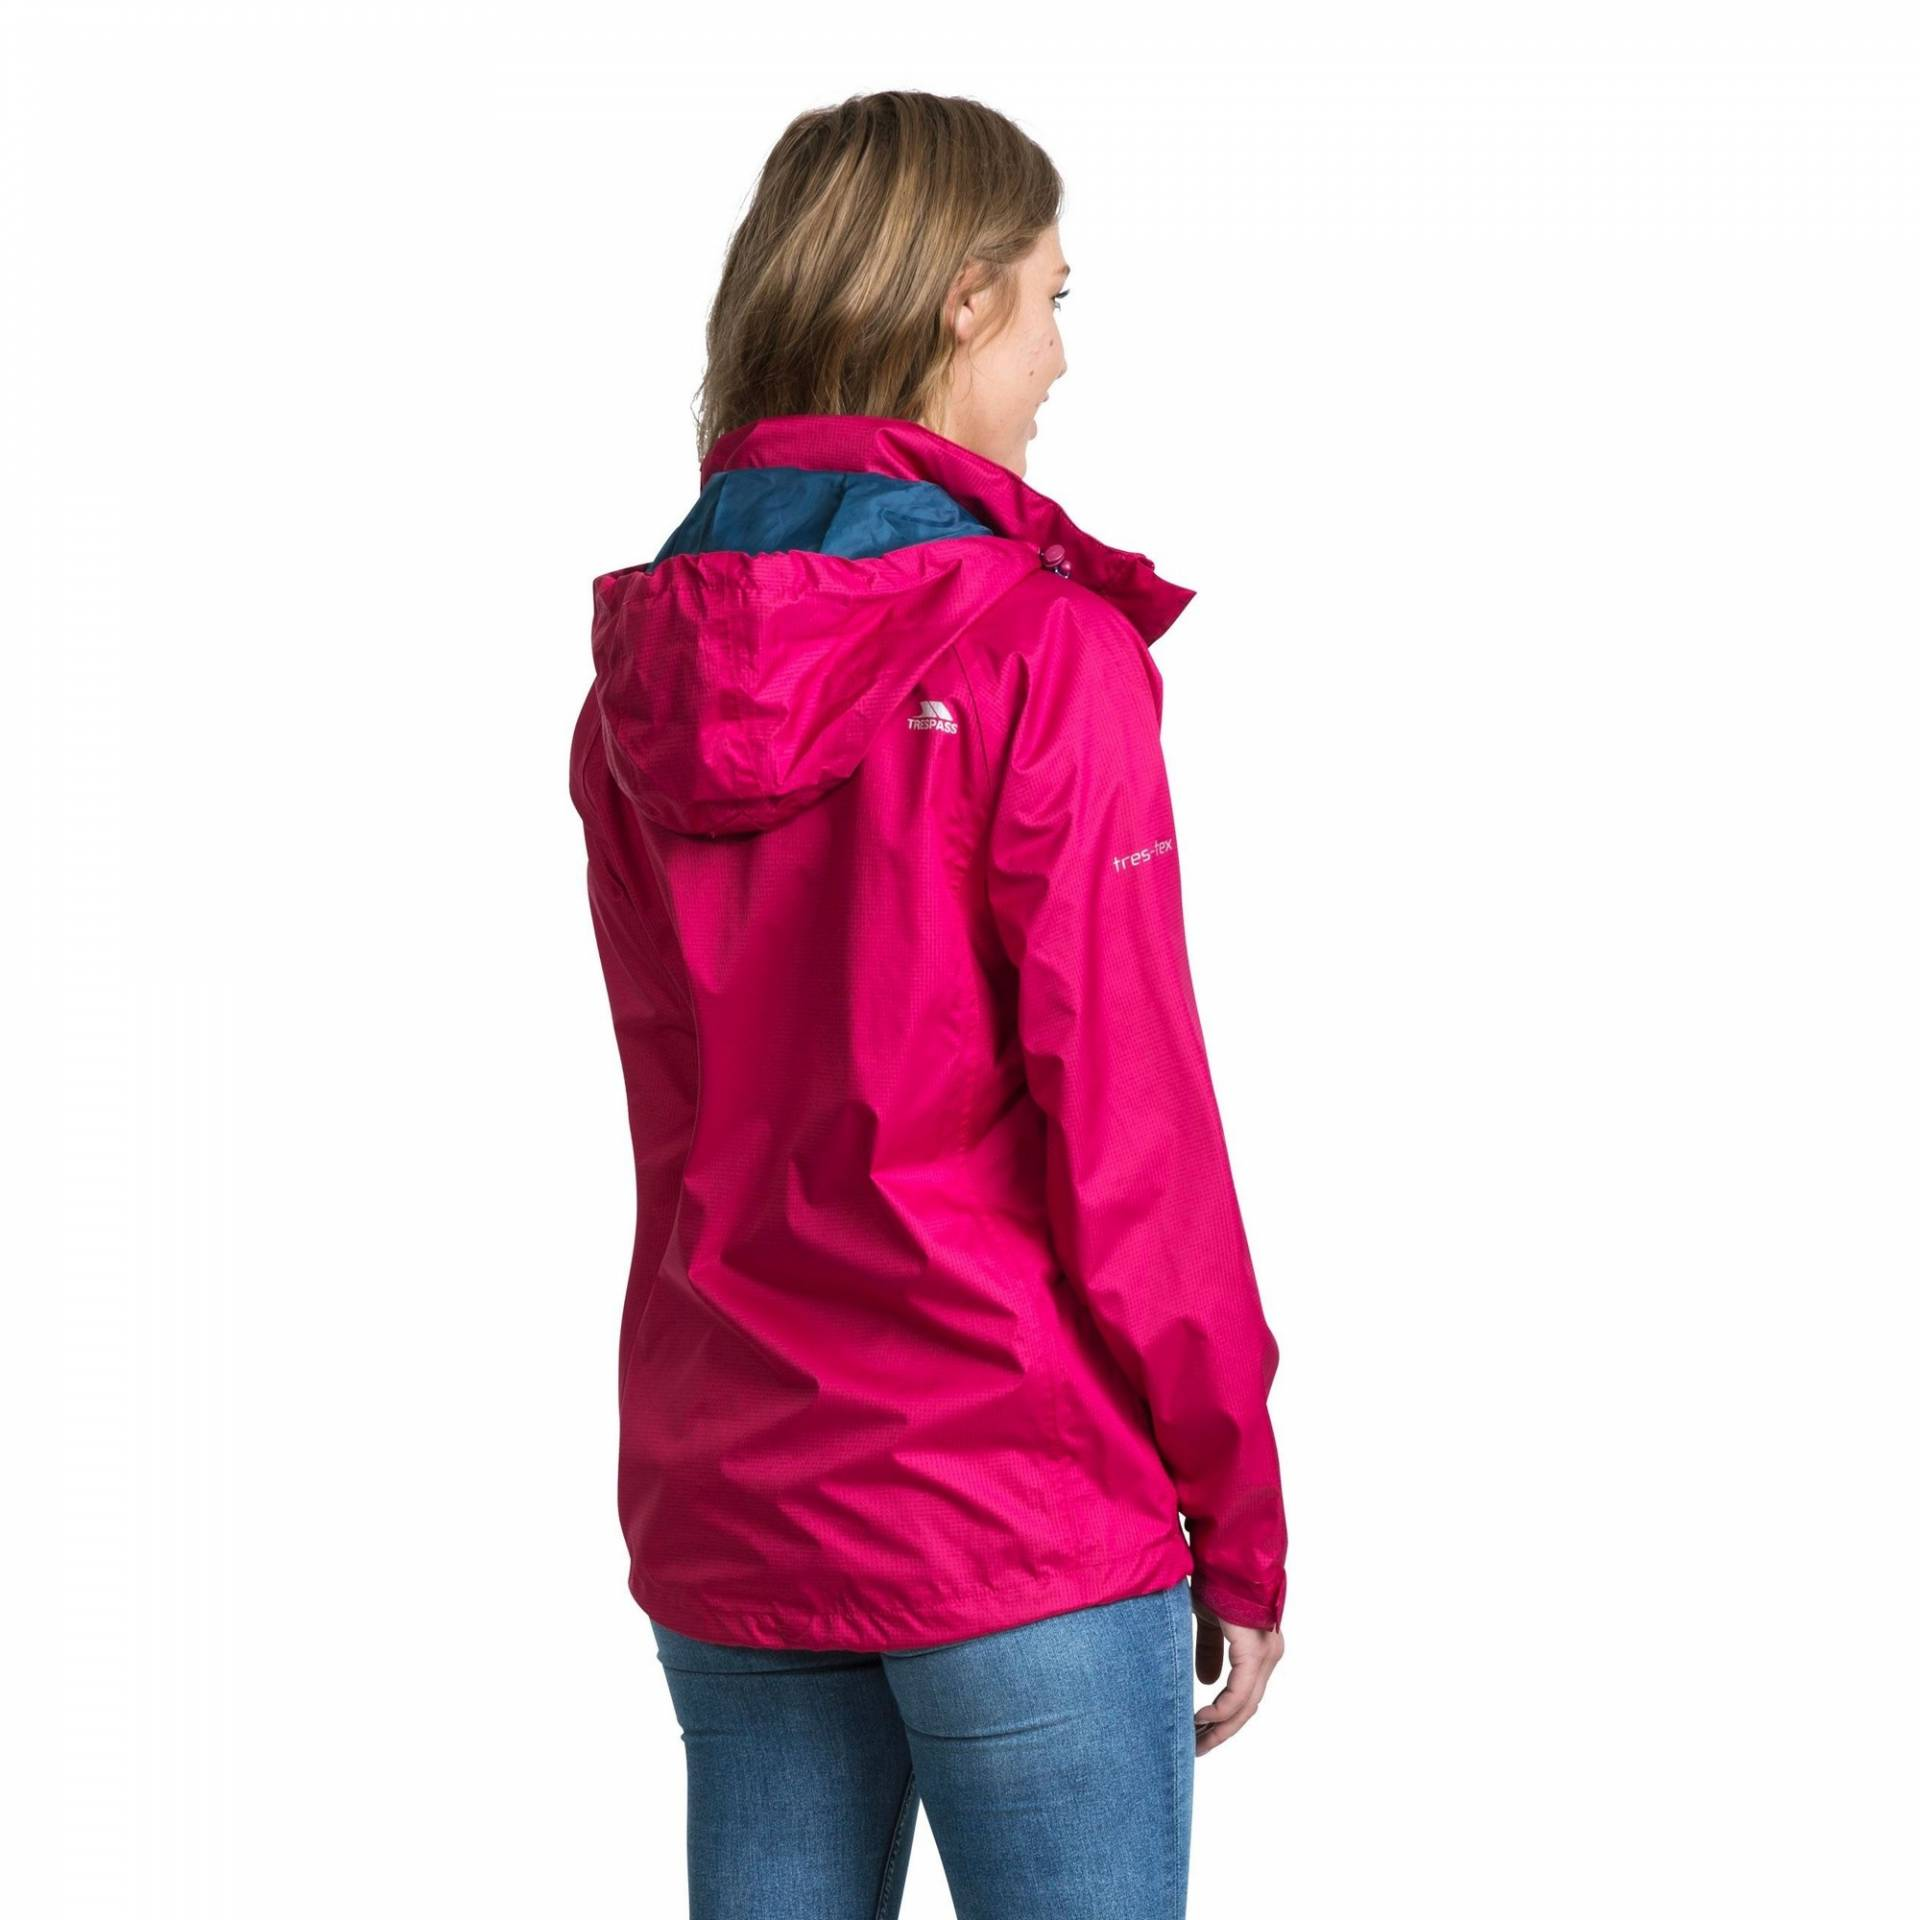 Trespass Outdoorjacke »Damen Jacke Lanna II mit Kapuze, wasserdicht« von Trespass